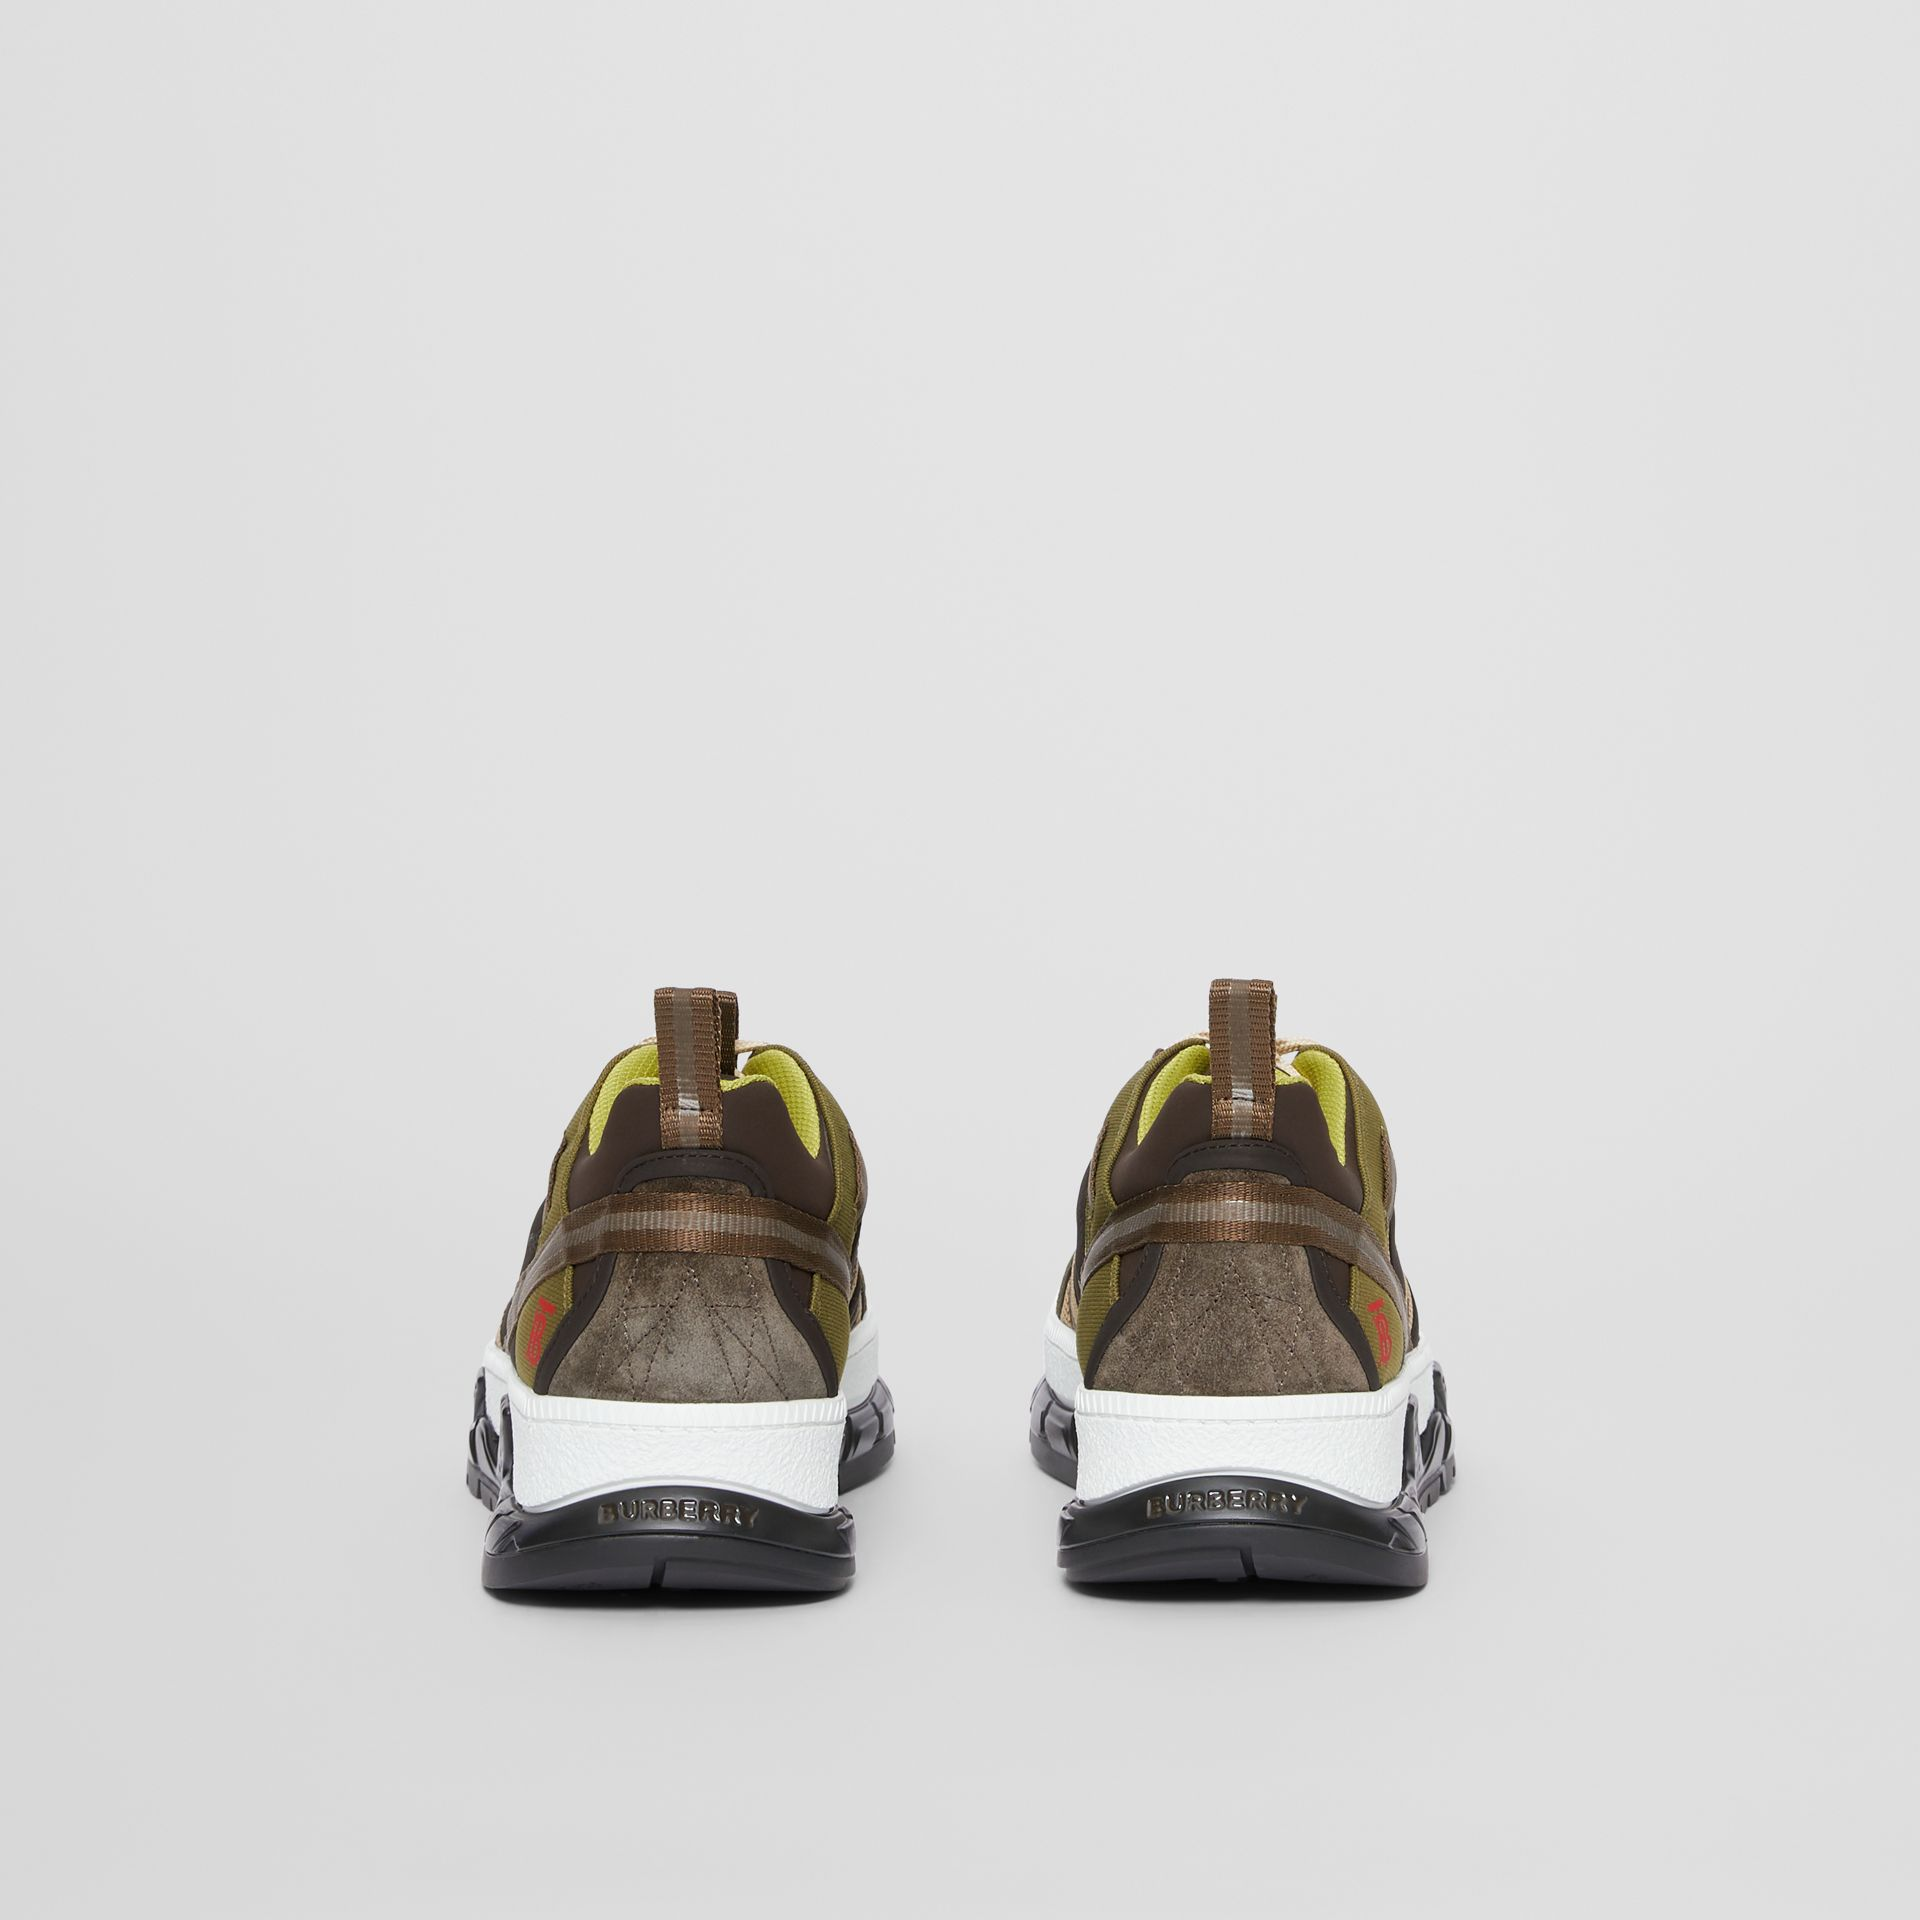 Mesh and Suede Union Sneakers in Khaki / Brown - Men | Burberry Canada - gallery image 3